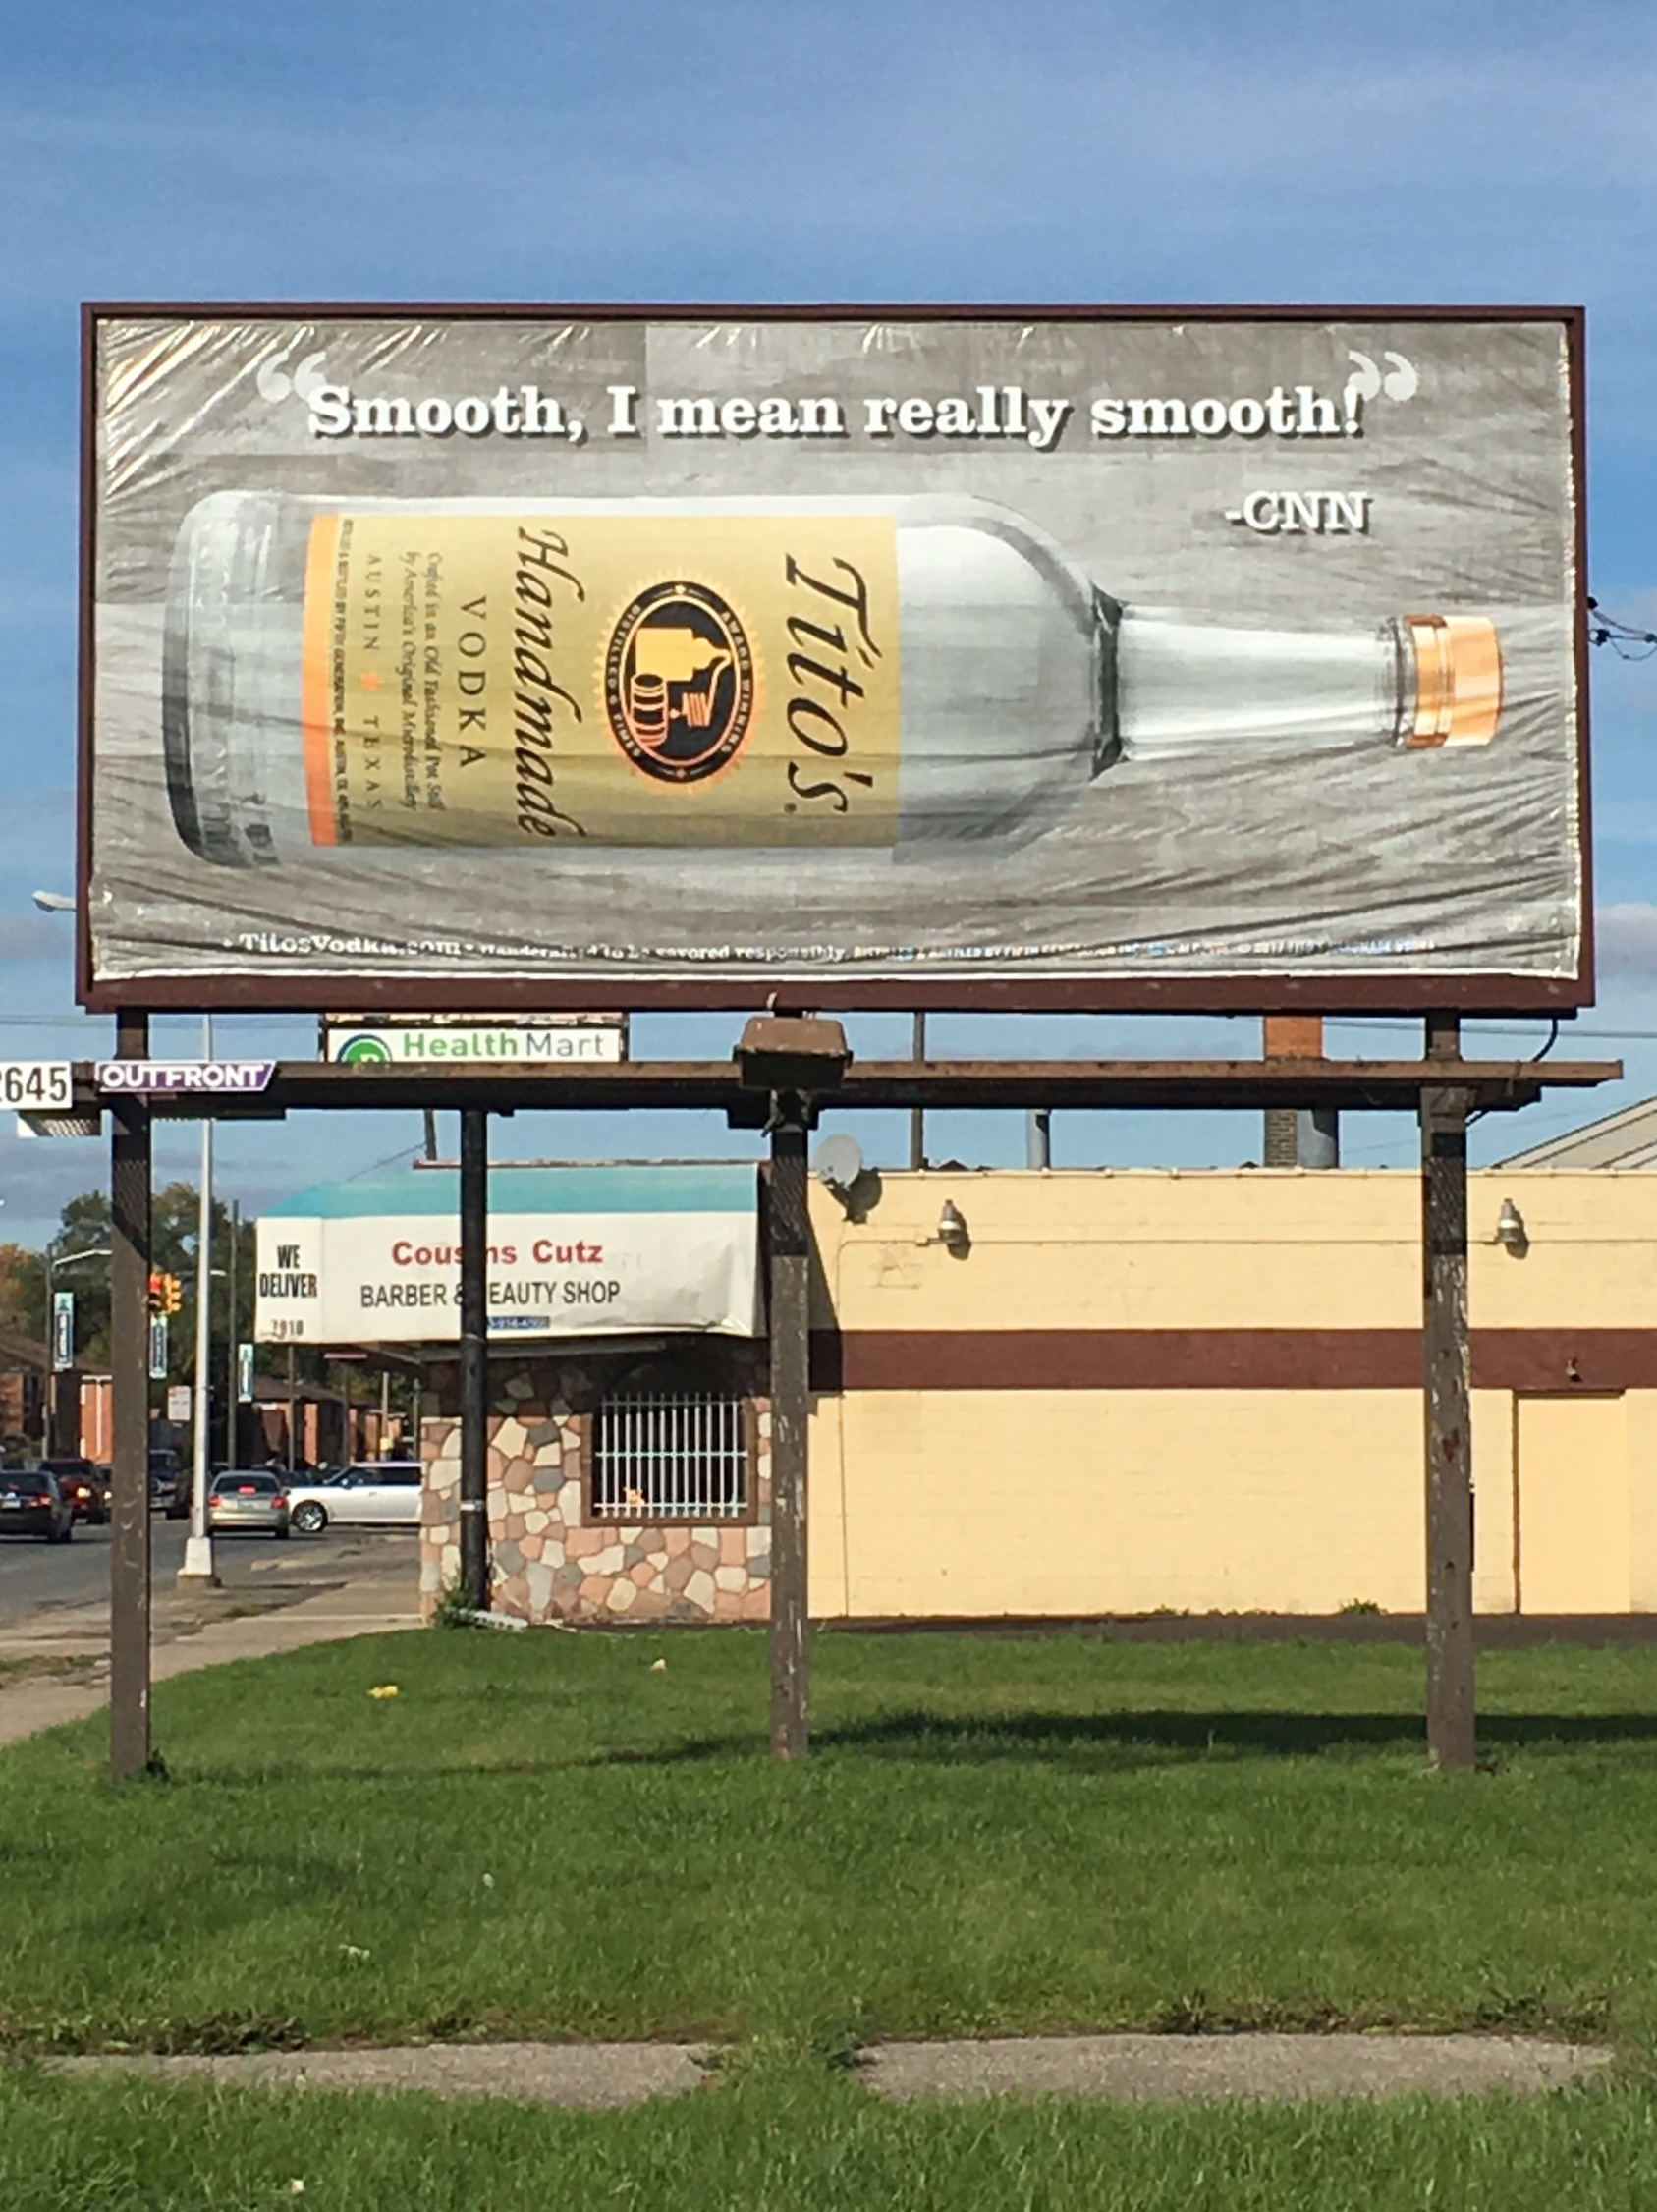 Don't shill me your pinko liberal swill, CNN.What's more, that billboard vinyl is the visual antonym of smooth.